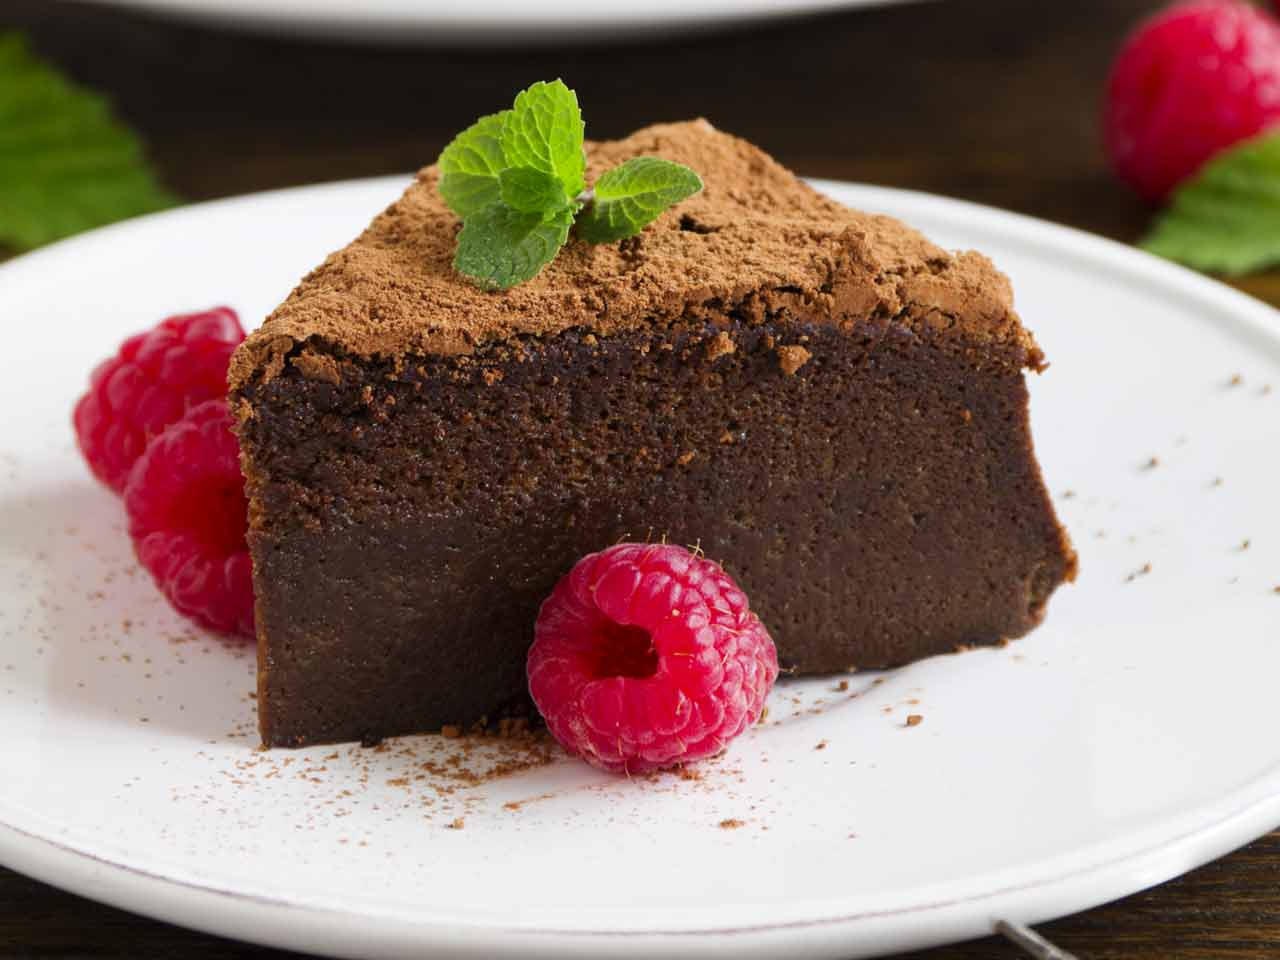 Gluten-free chocolate and raspberry torte